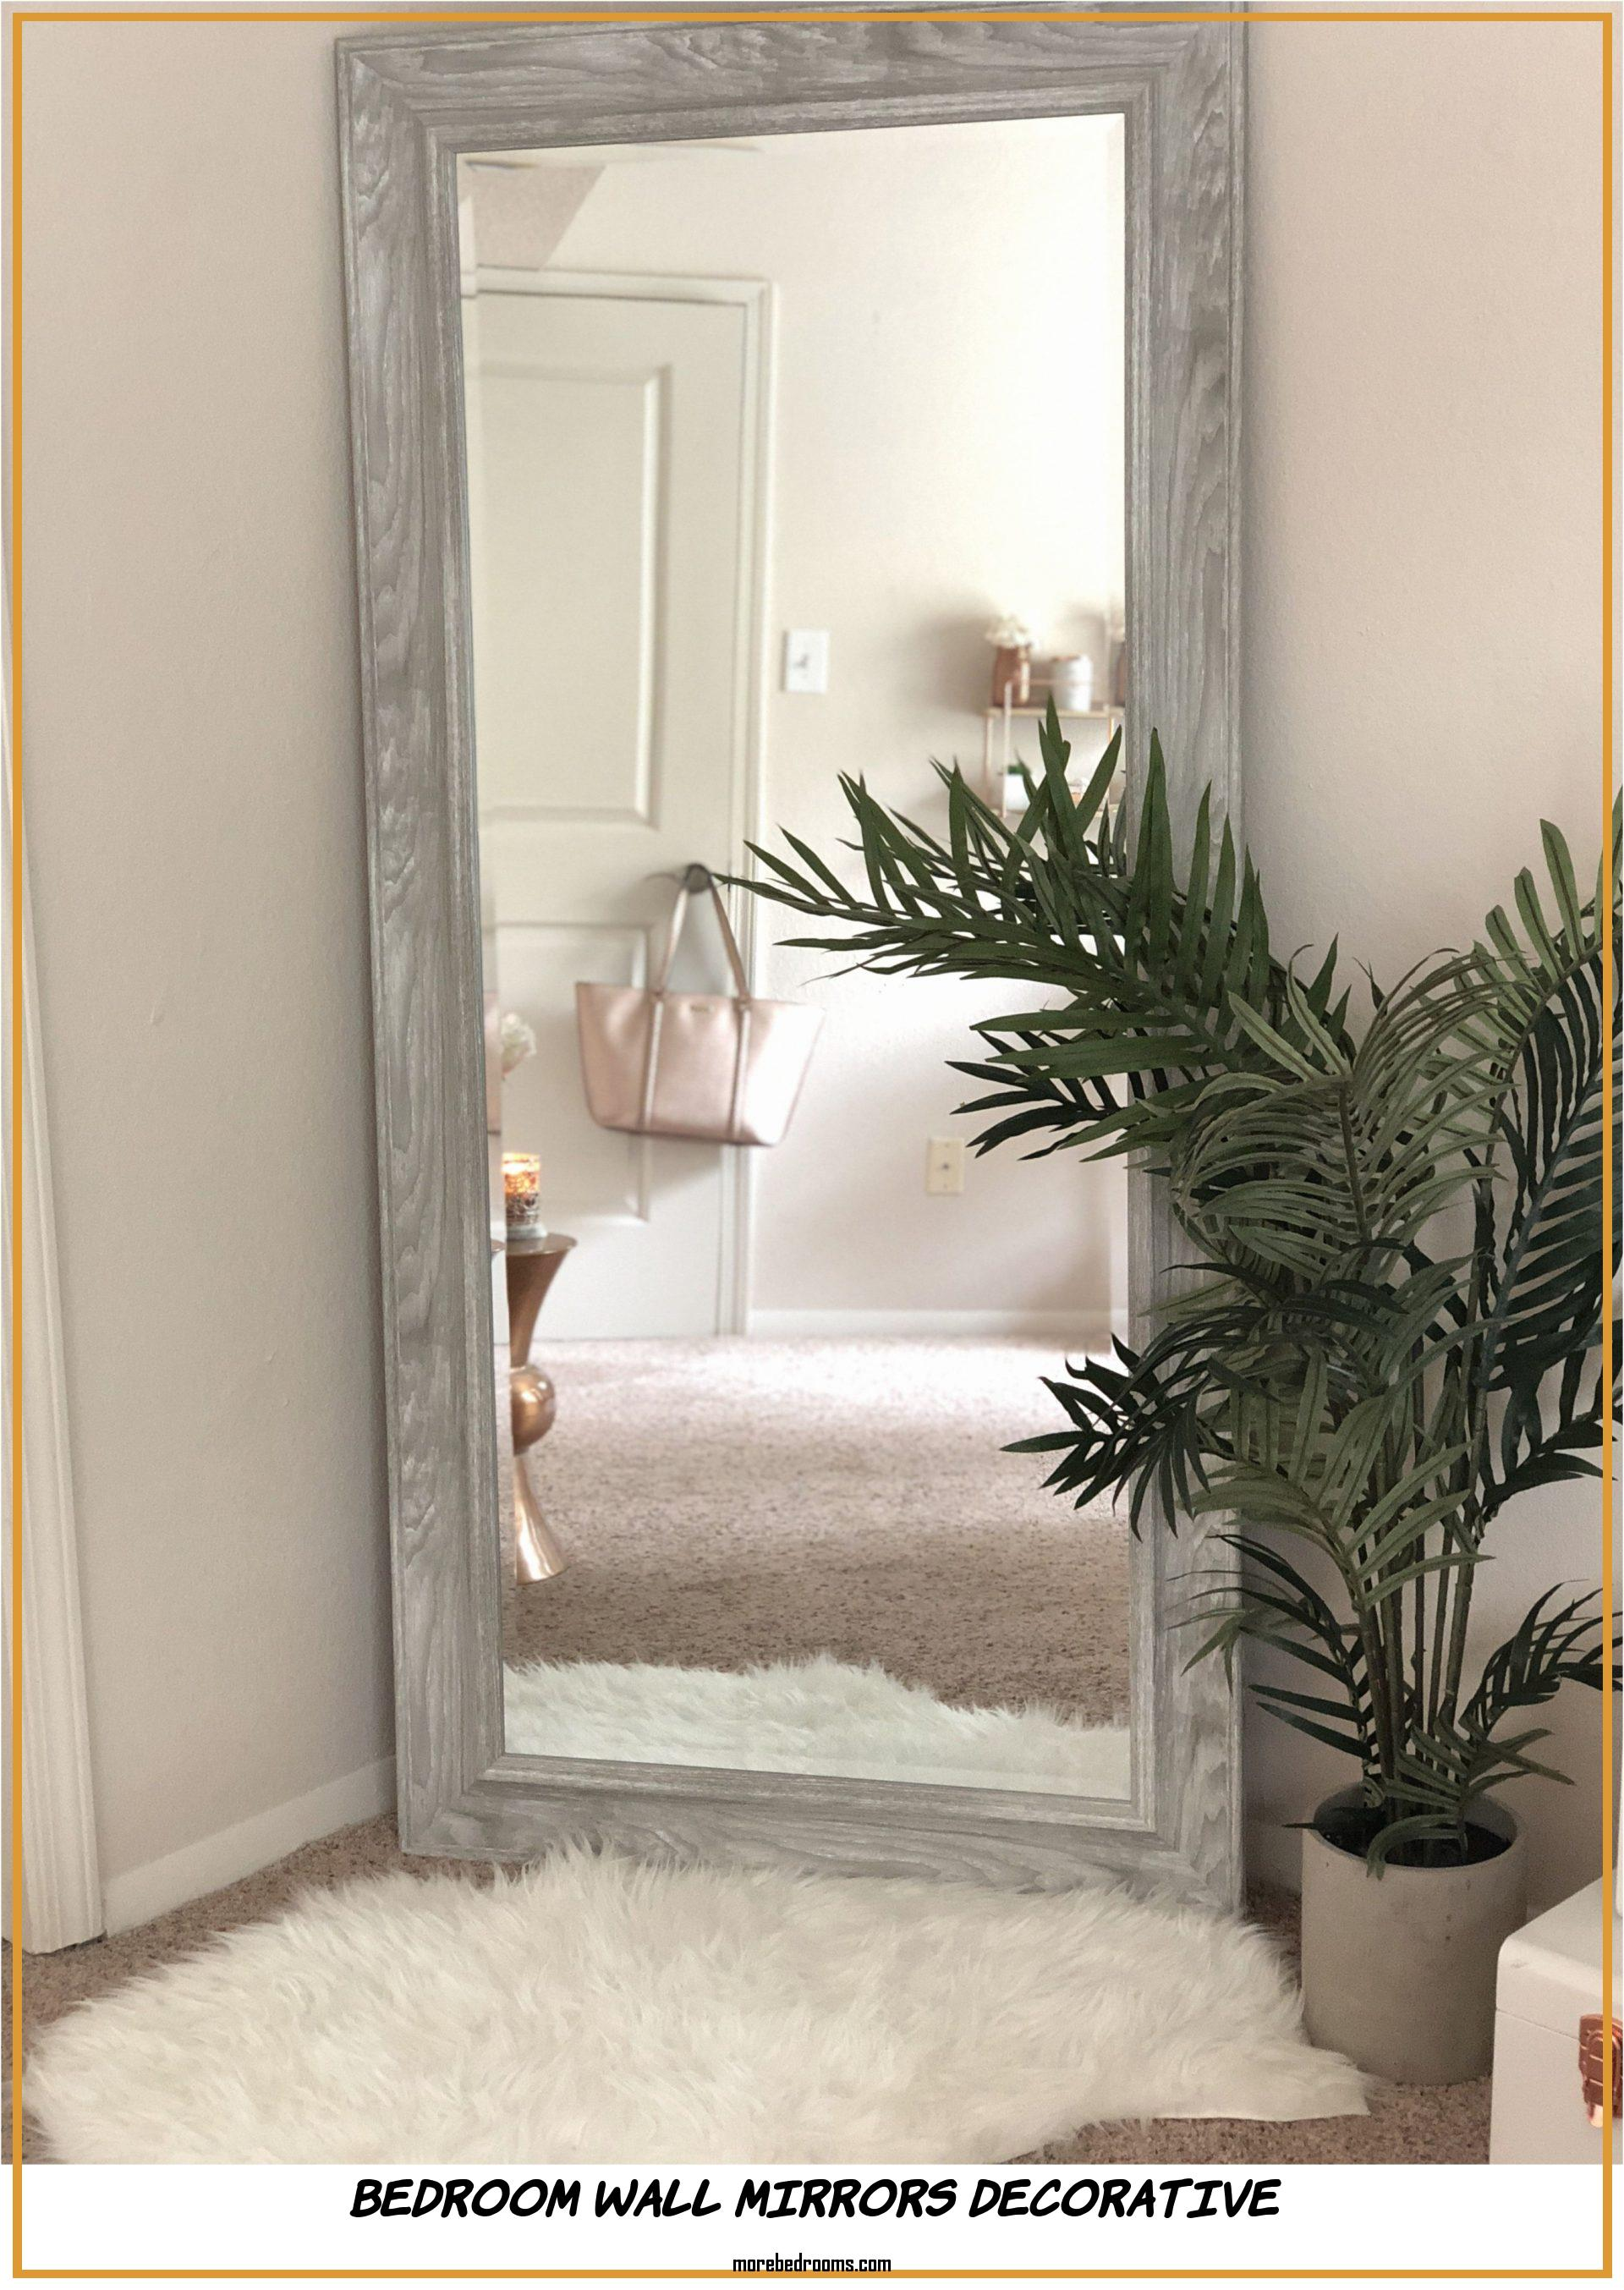 Bedroom Wall Mirrors Decorative